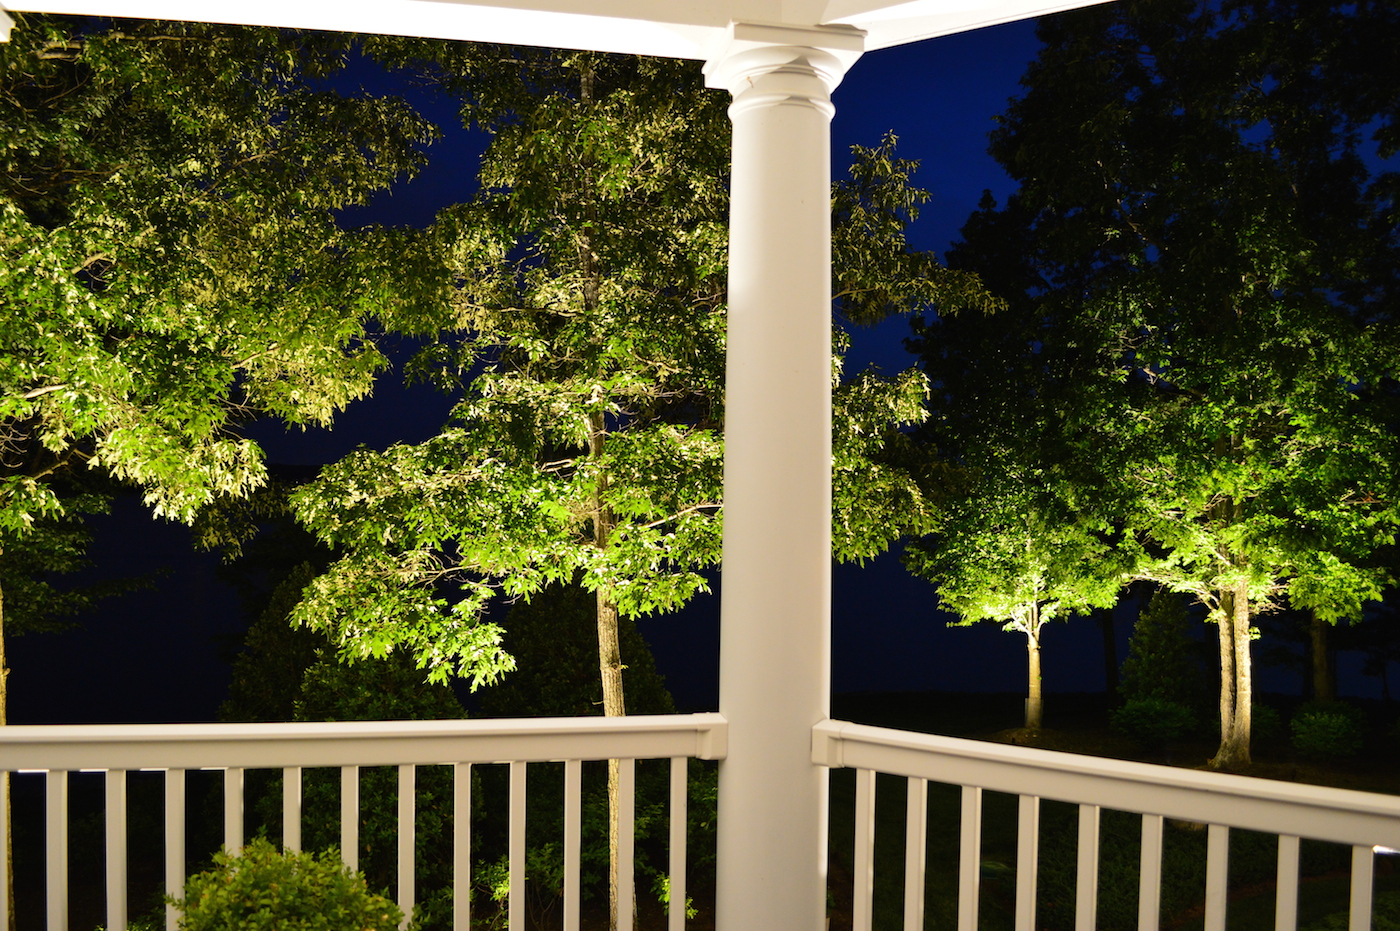 Backyard Lighting Tree View from a Porch in VA